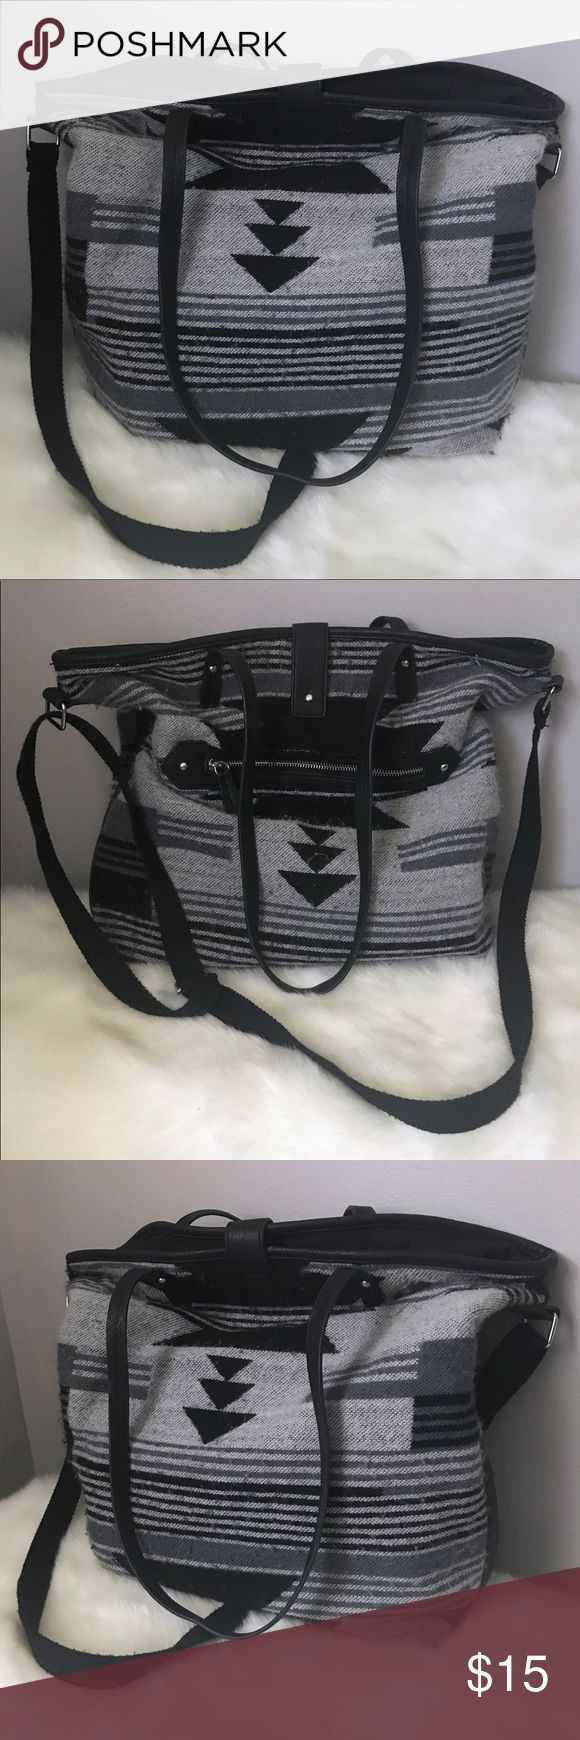 American Eagle Grey & Black Tote Bag American Eagle Grey & Black Tote Bag. Used but in great condition. Has fuzzy outside. Nice & big for schoolbooks and what not. American Eagle Outfitters Bags Totes